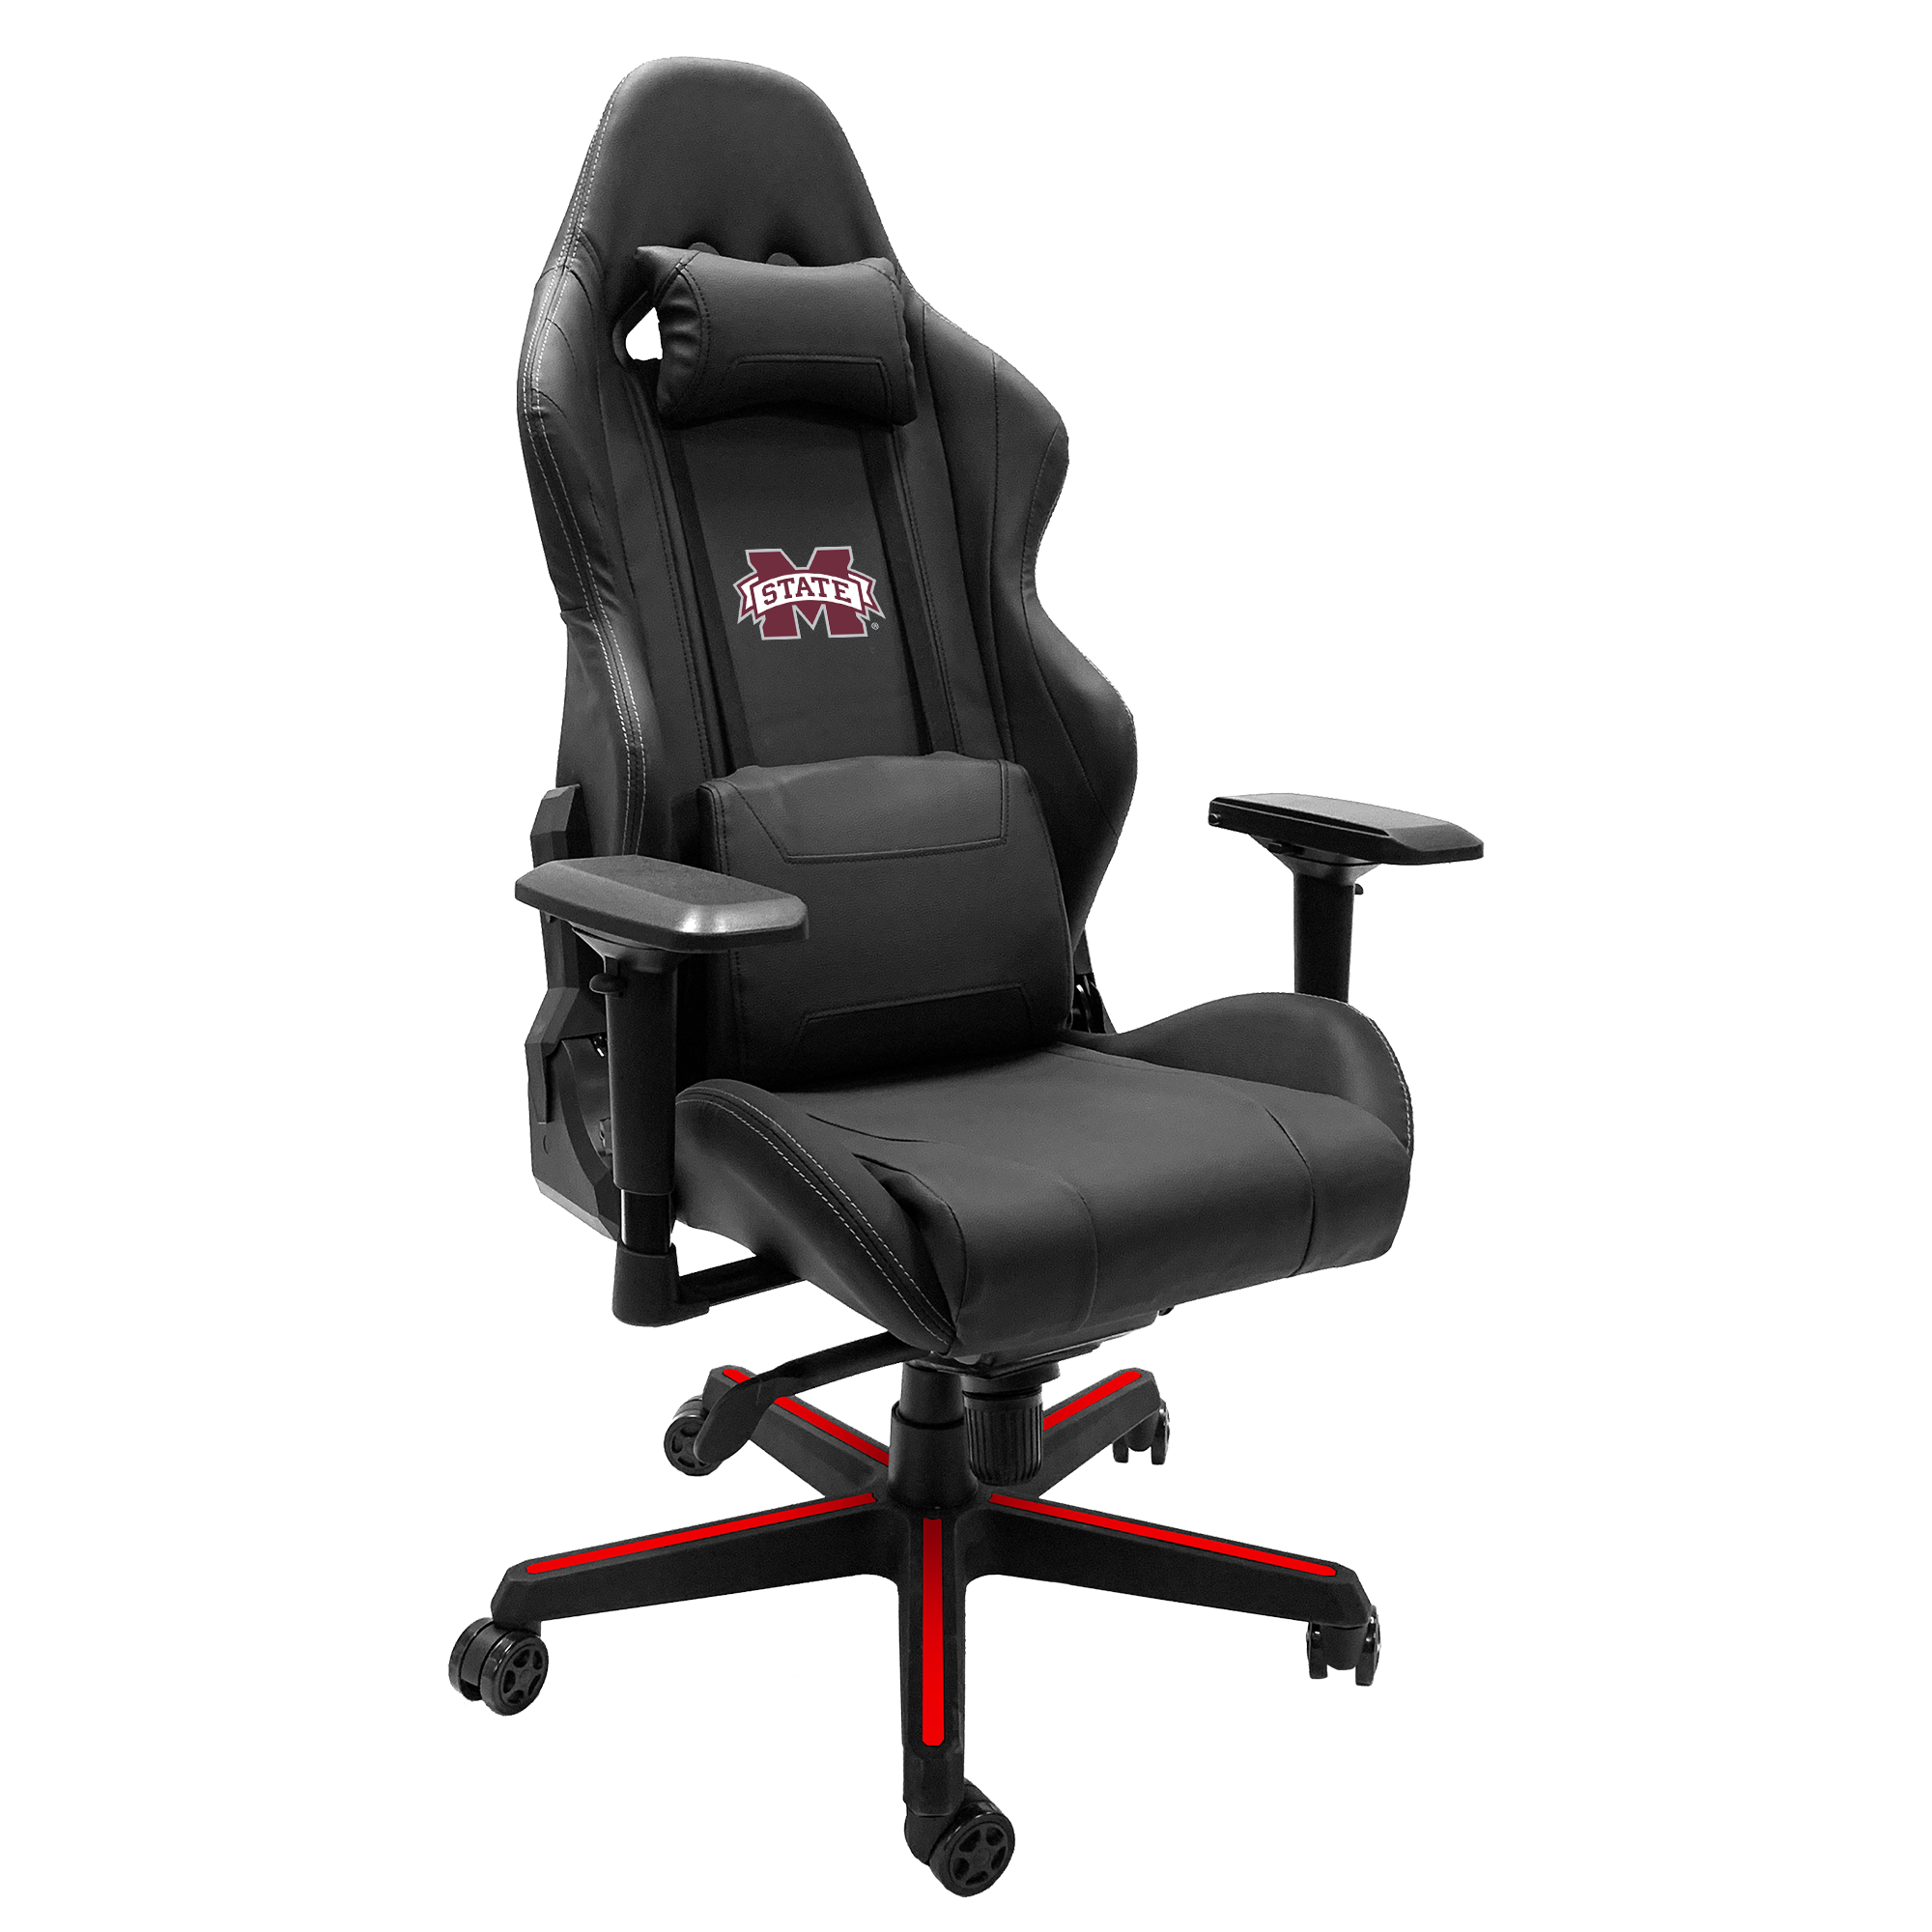 Xpression Gaming Chair with Mississippi State Primary